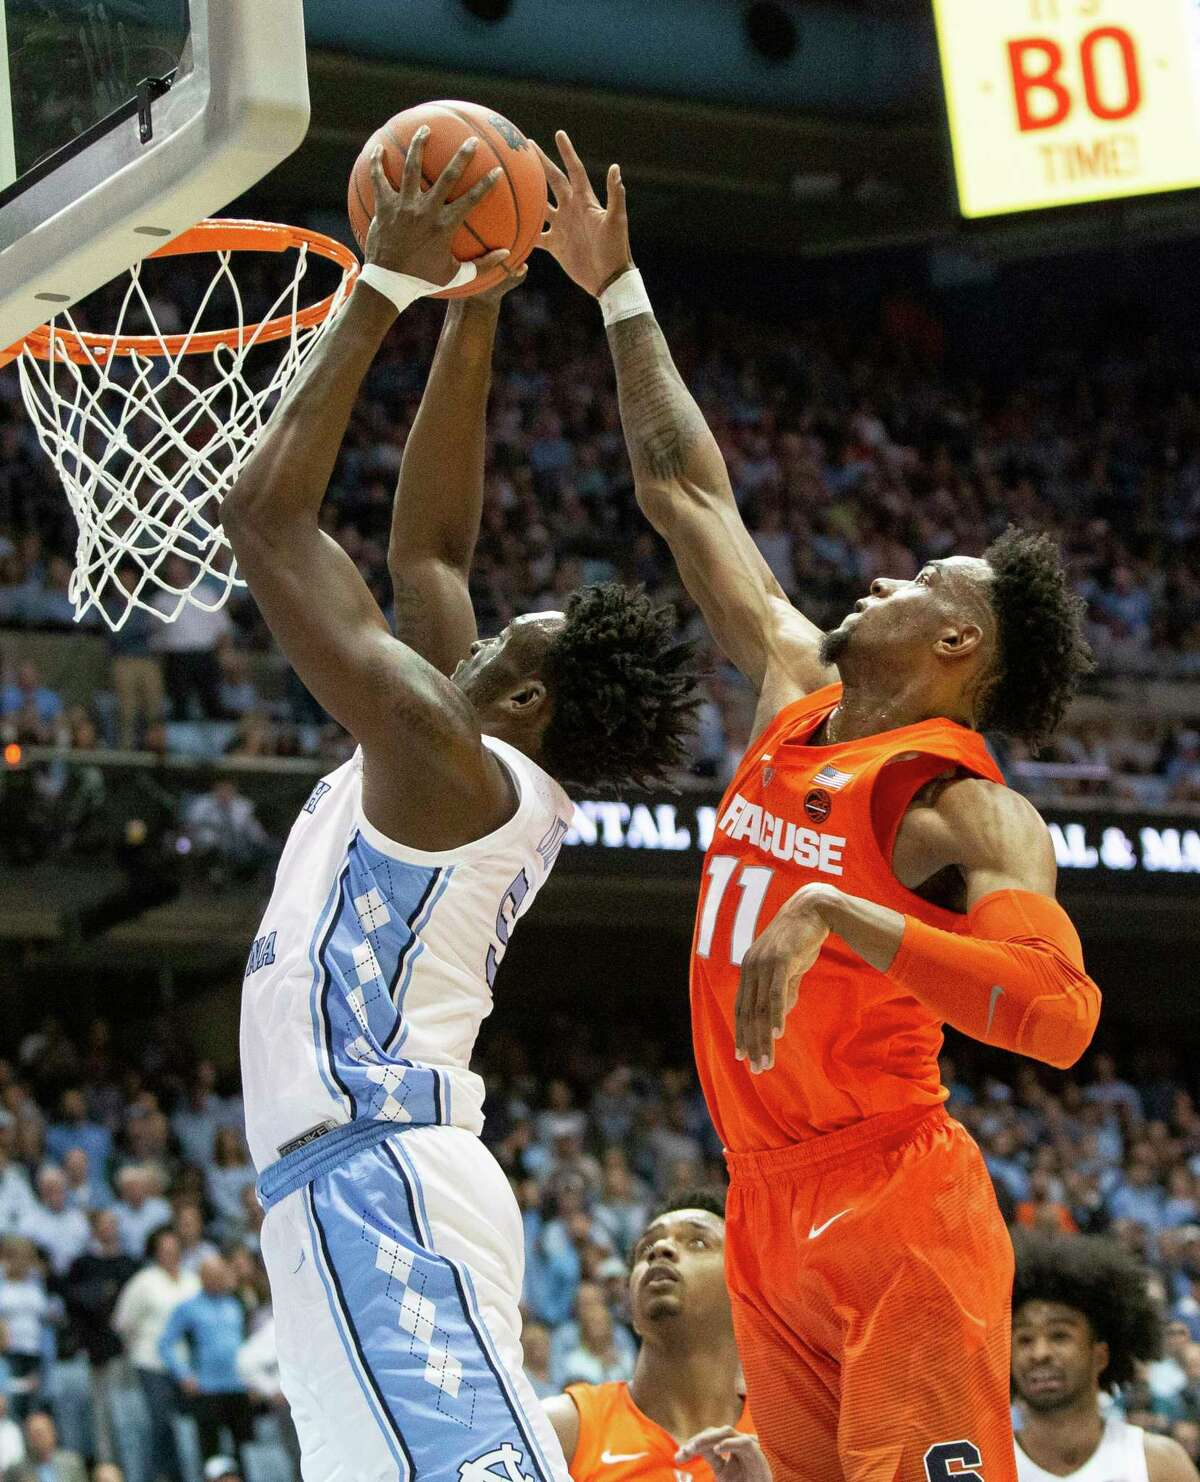 Syracuse's Oshae Brissett, right, blocks the shot of North Carolina's Nassir Little, left, during the second half of an NCAA college basketball game in Chapel Hill, N.C., Tuesday, Feb. 26, 2019. (AP Photo/Ben McKeown)